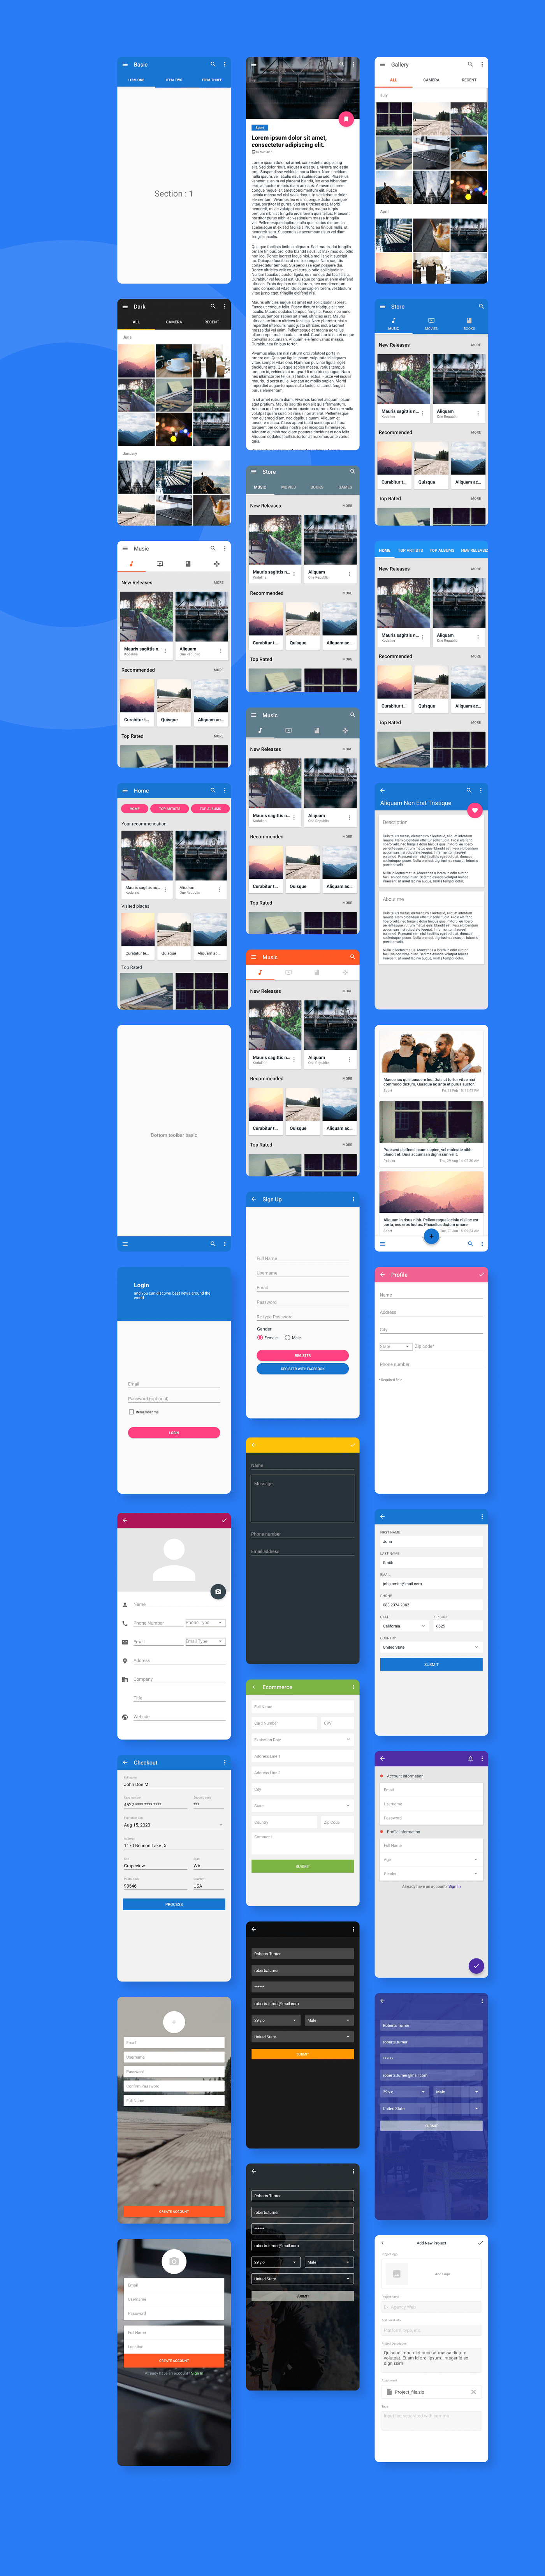 MaterialX - Android Material Design UI Components 2.7 - 22